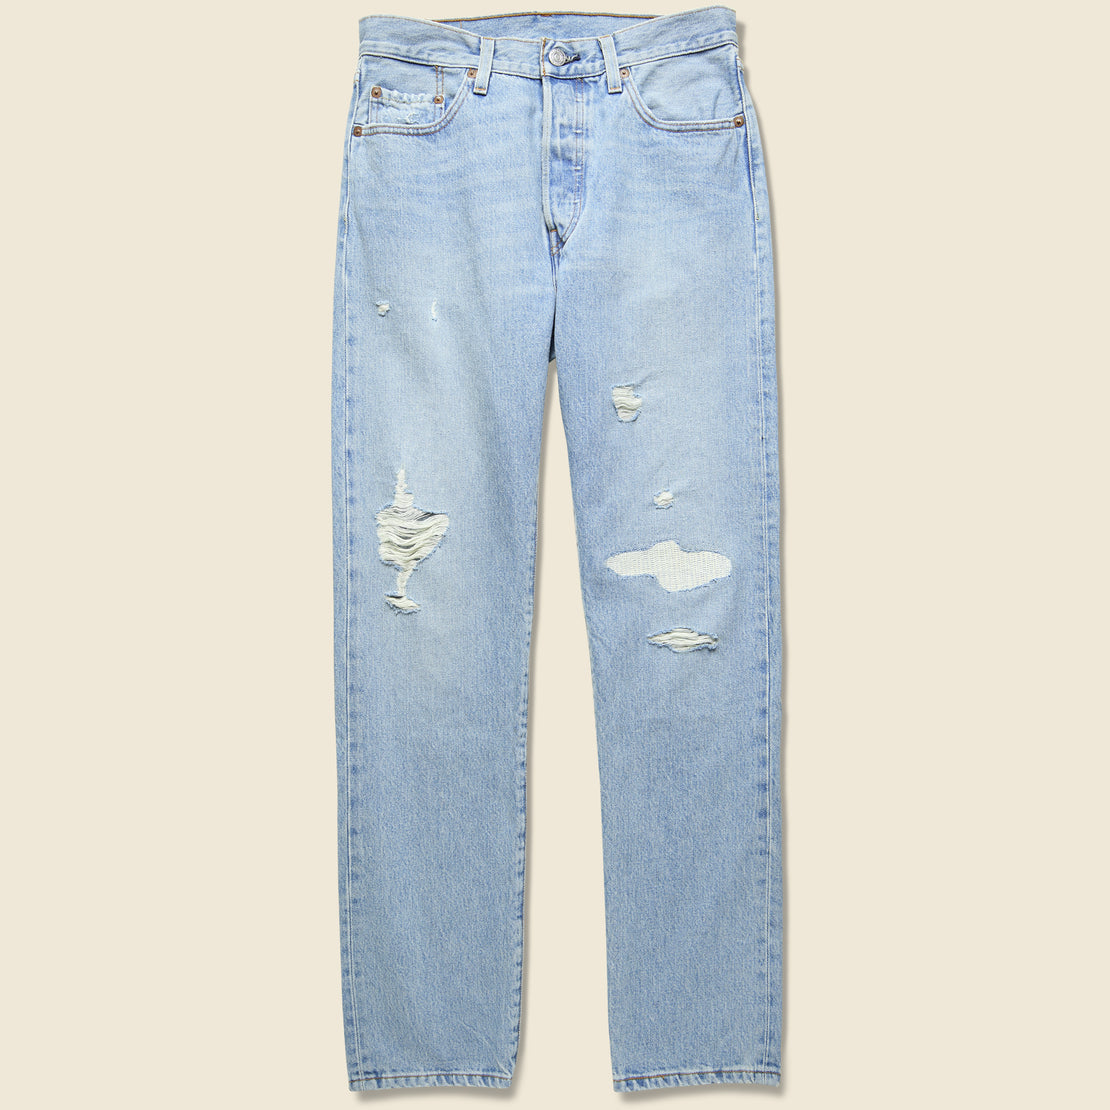 Jeans Hose HEART AND STAR Skinny Fit in washed denim